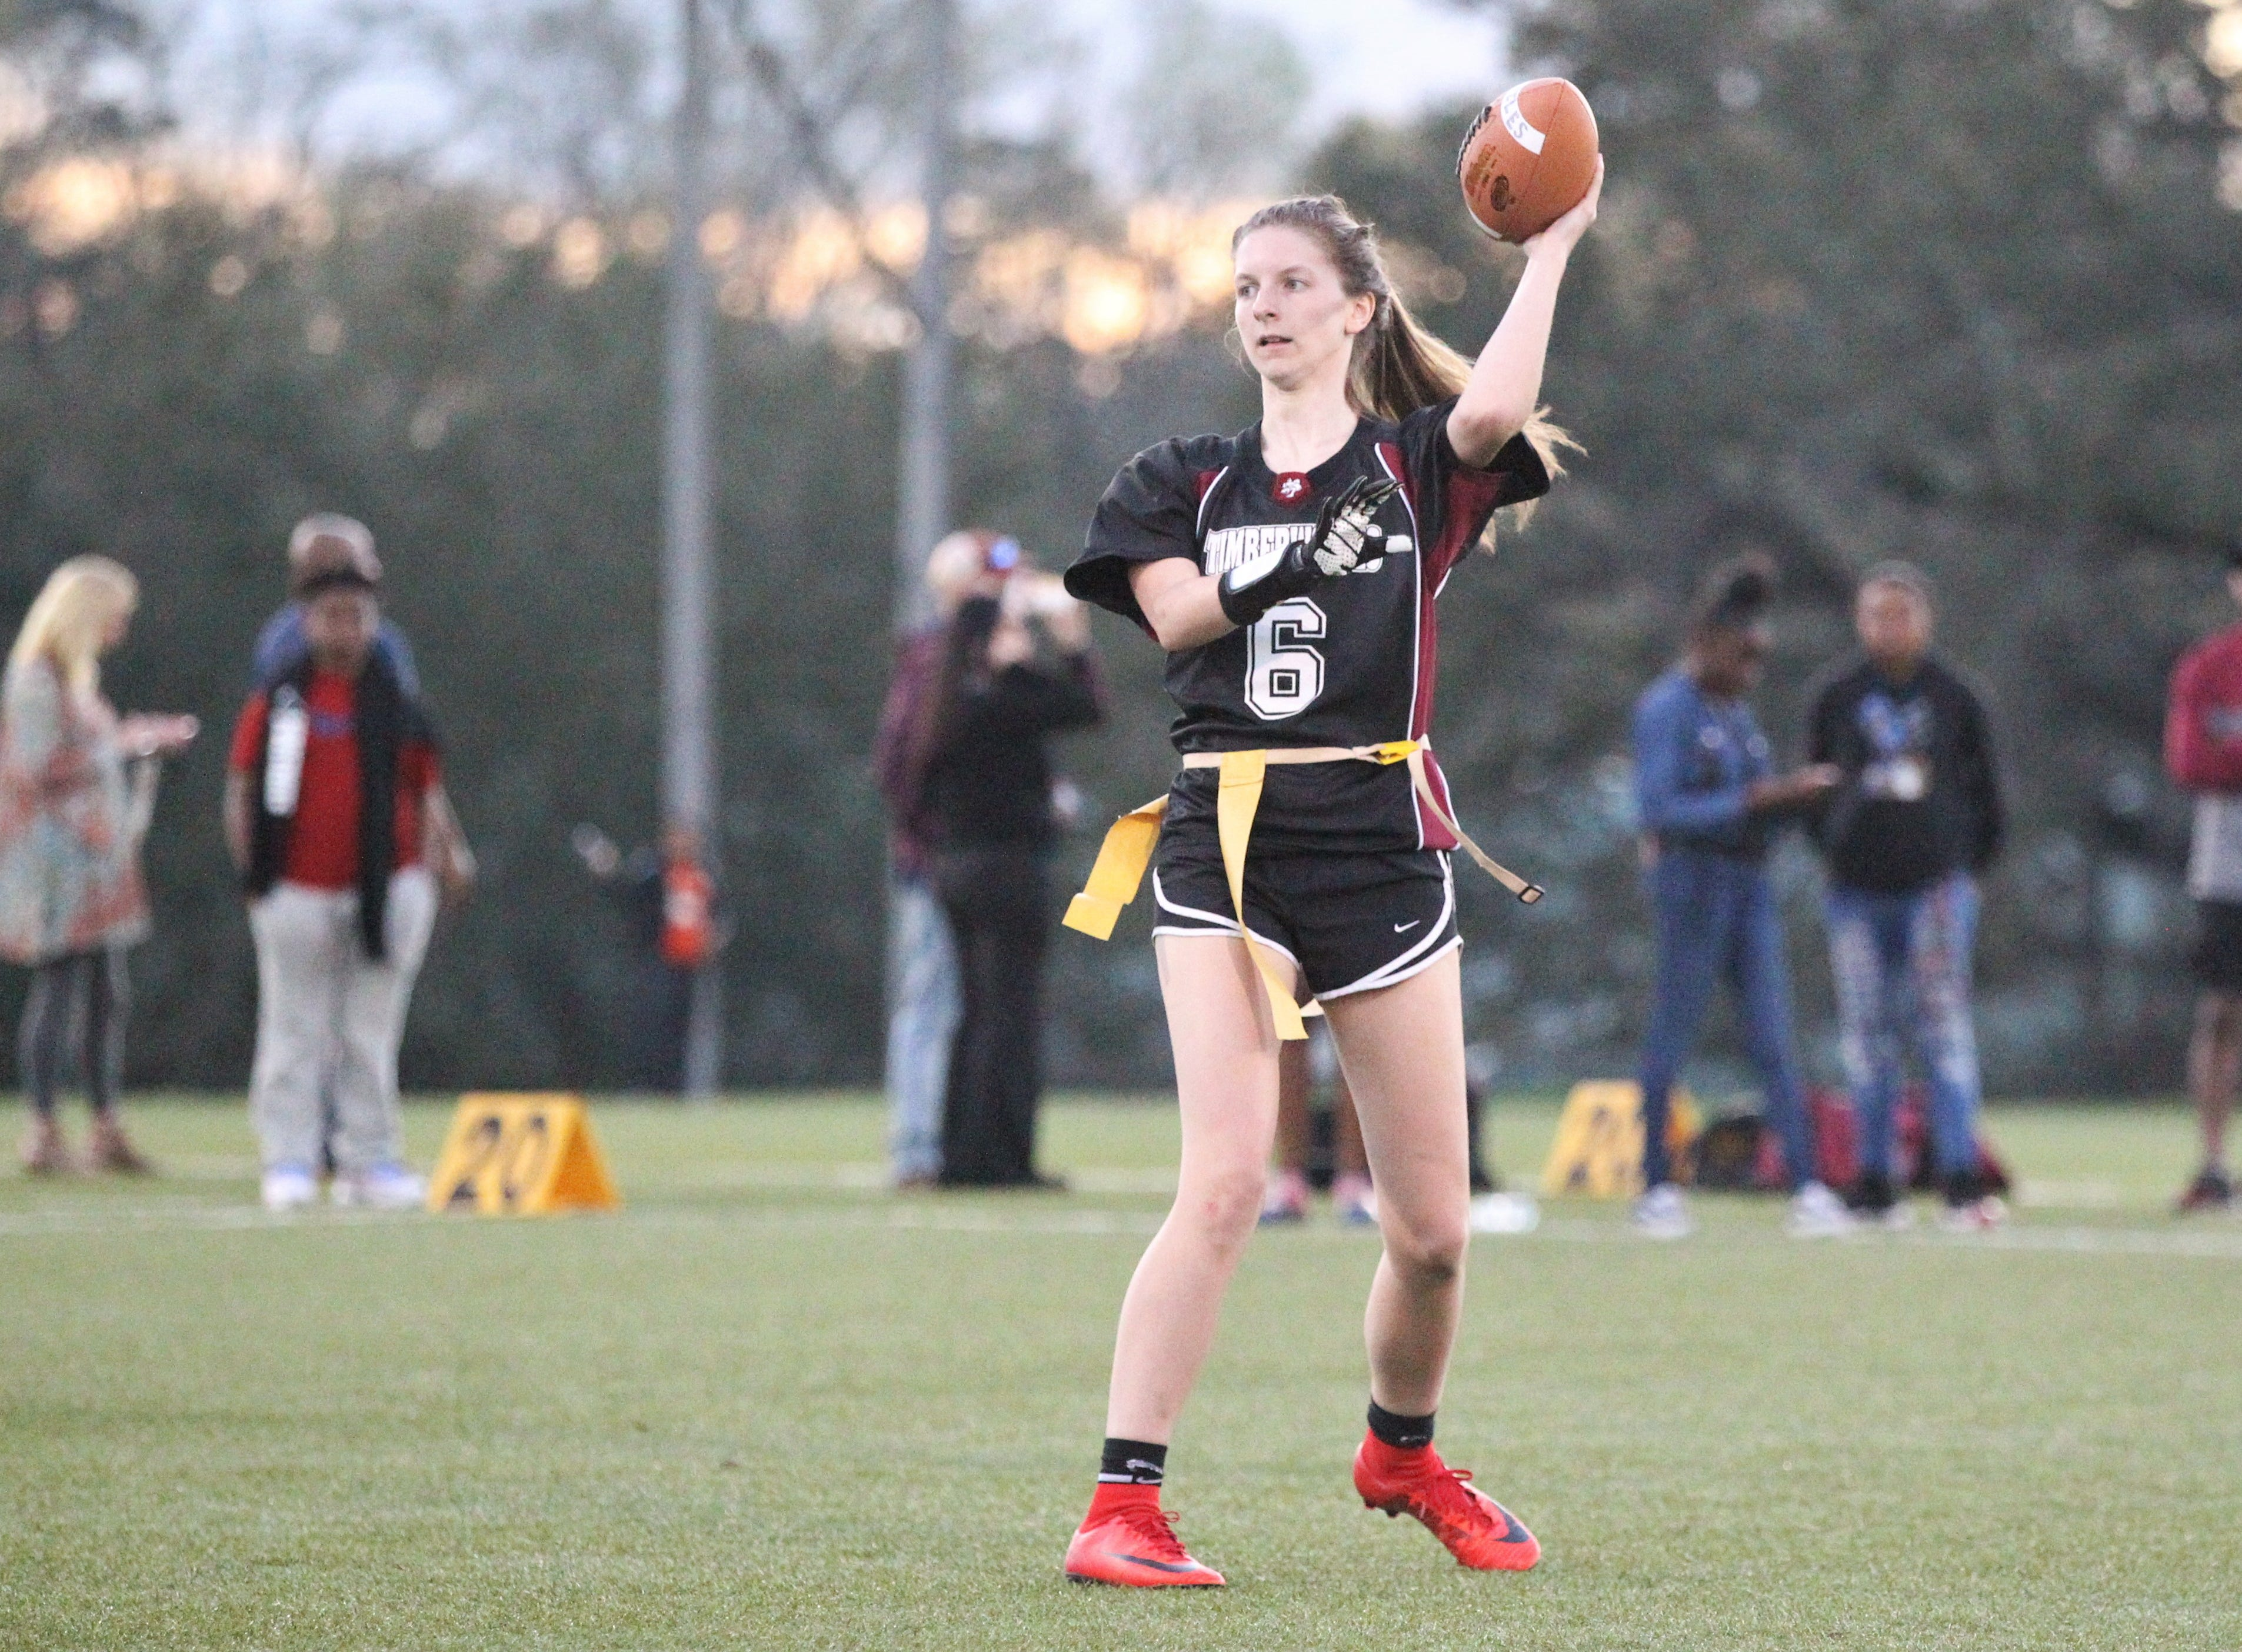 Chiles quarterback Rachel Myrick throws a pass as the Timberwolves and Rickards play during the 2019 flag football preseason classic at Florida A&M's intramural turf fields on Feb. 27, 2019.